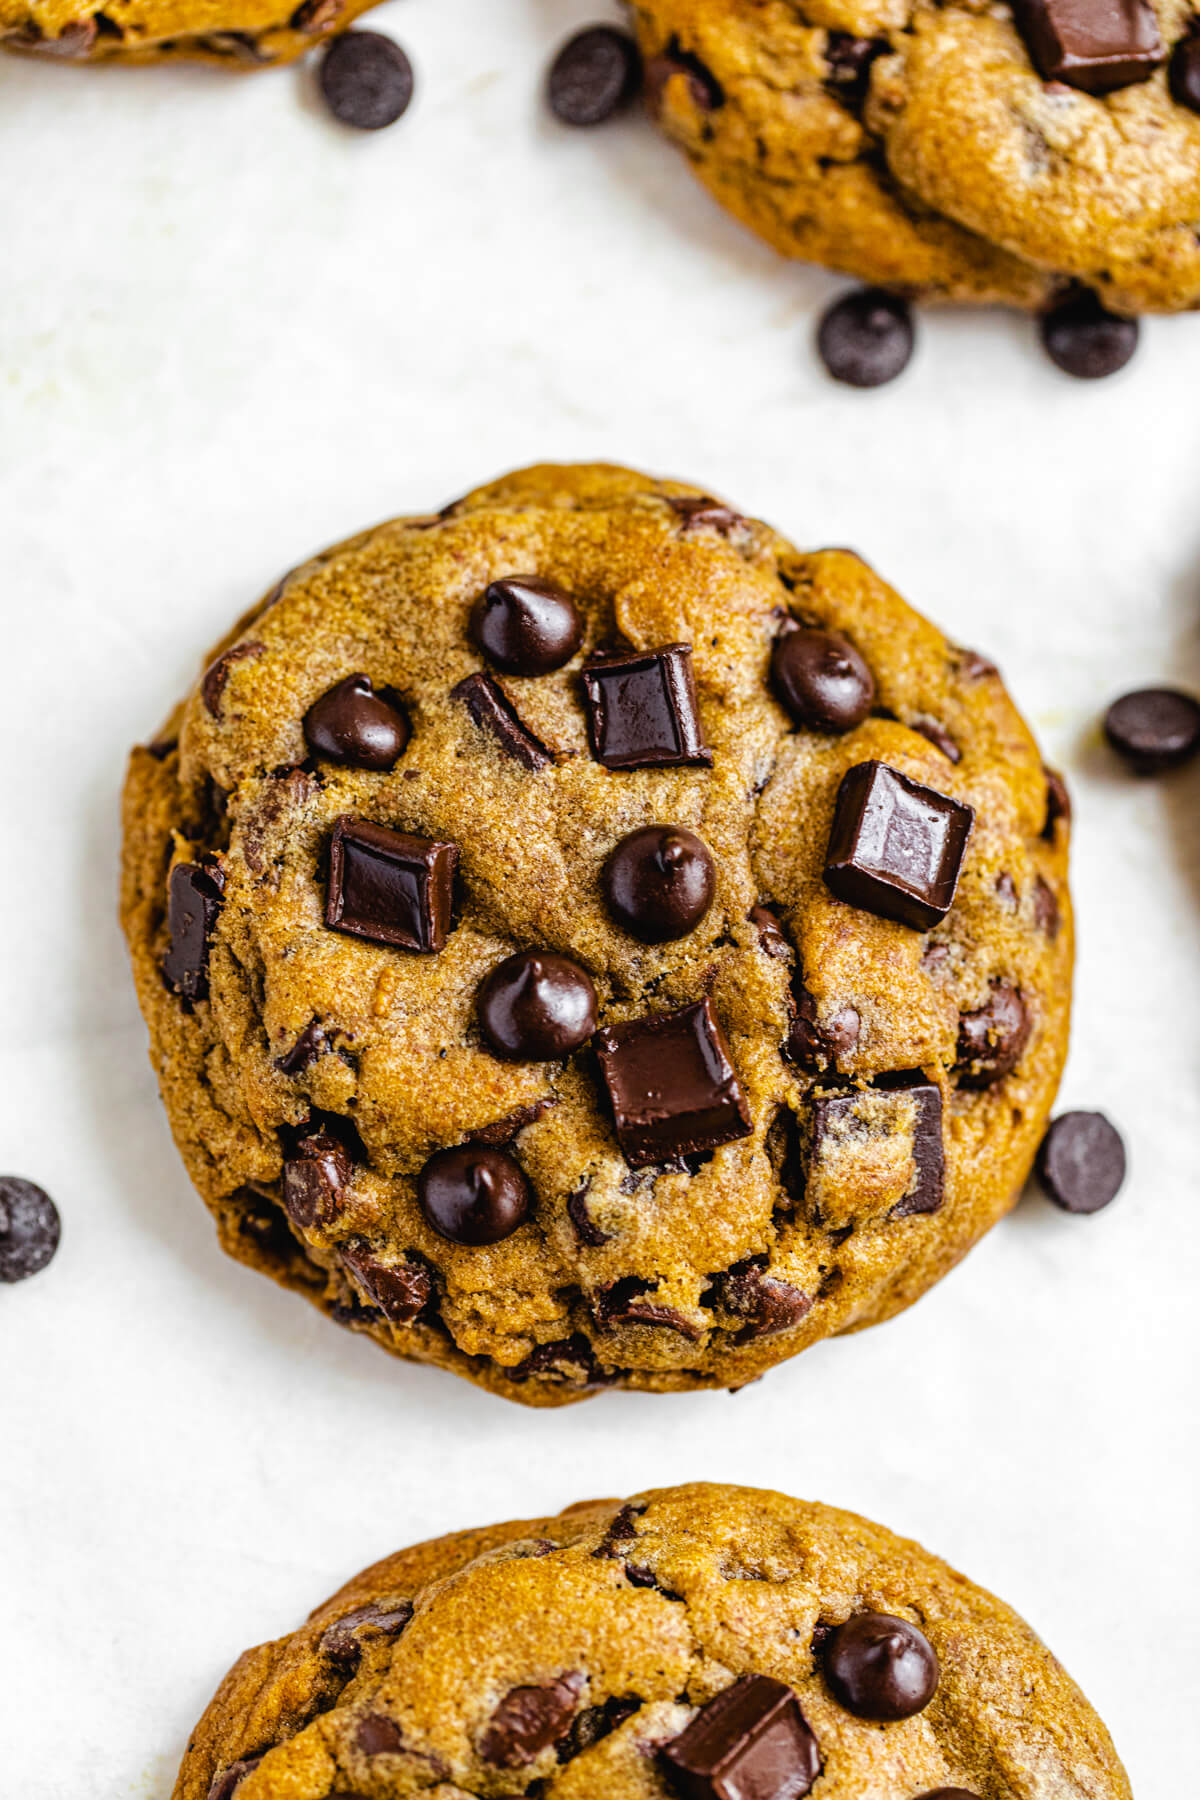 close up of a chocolate chip cookie